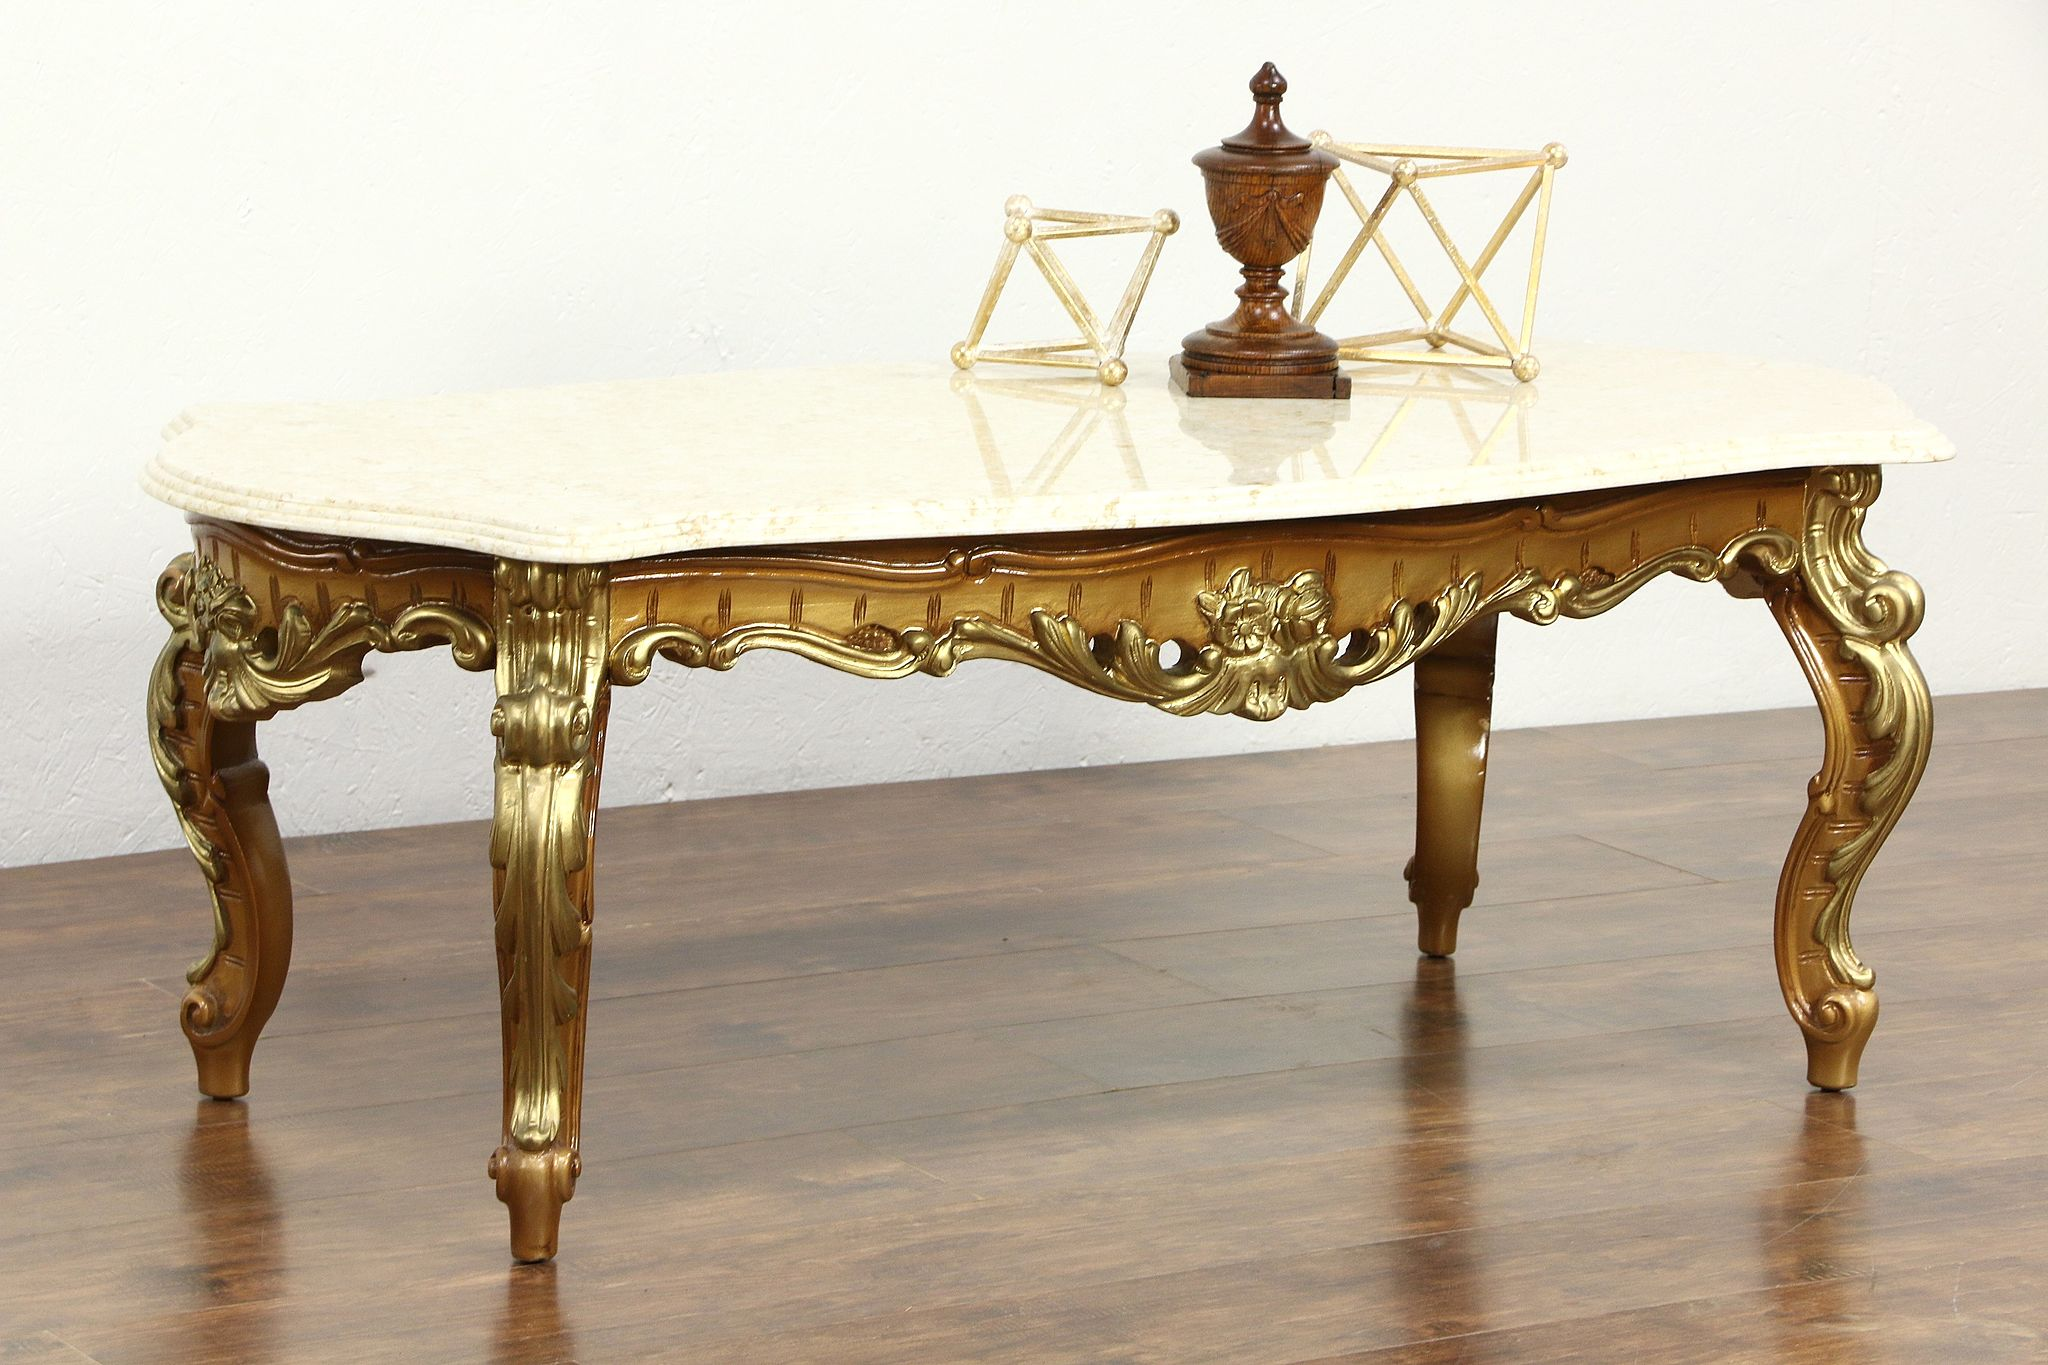 Sold Carved Gold Bronze Finish Vintage Coffee Table Marble Top Harp Gallery Antique Furniture